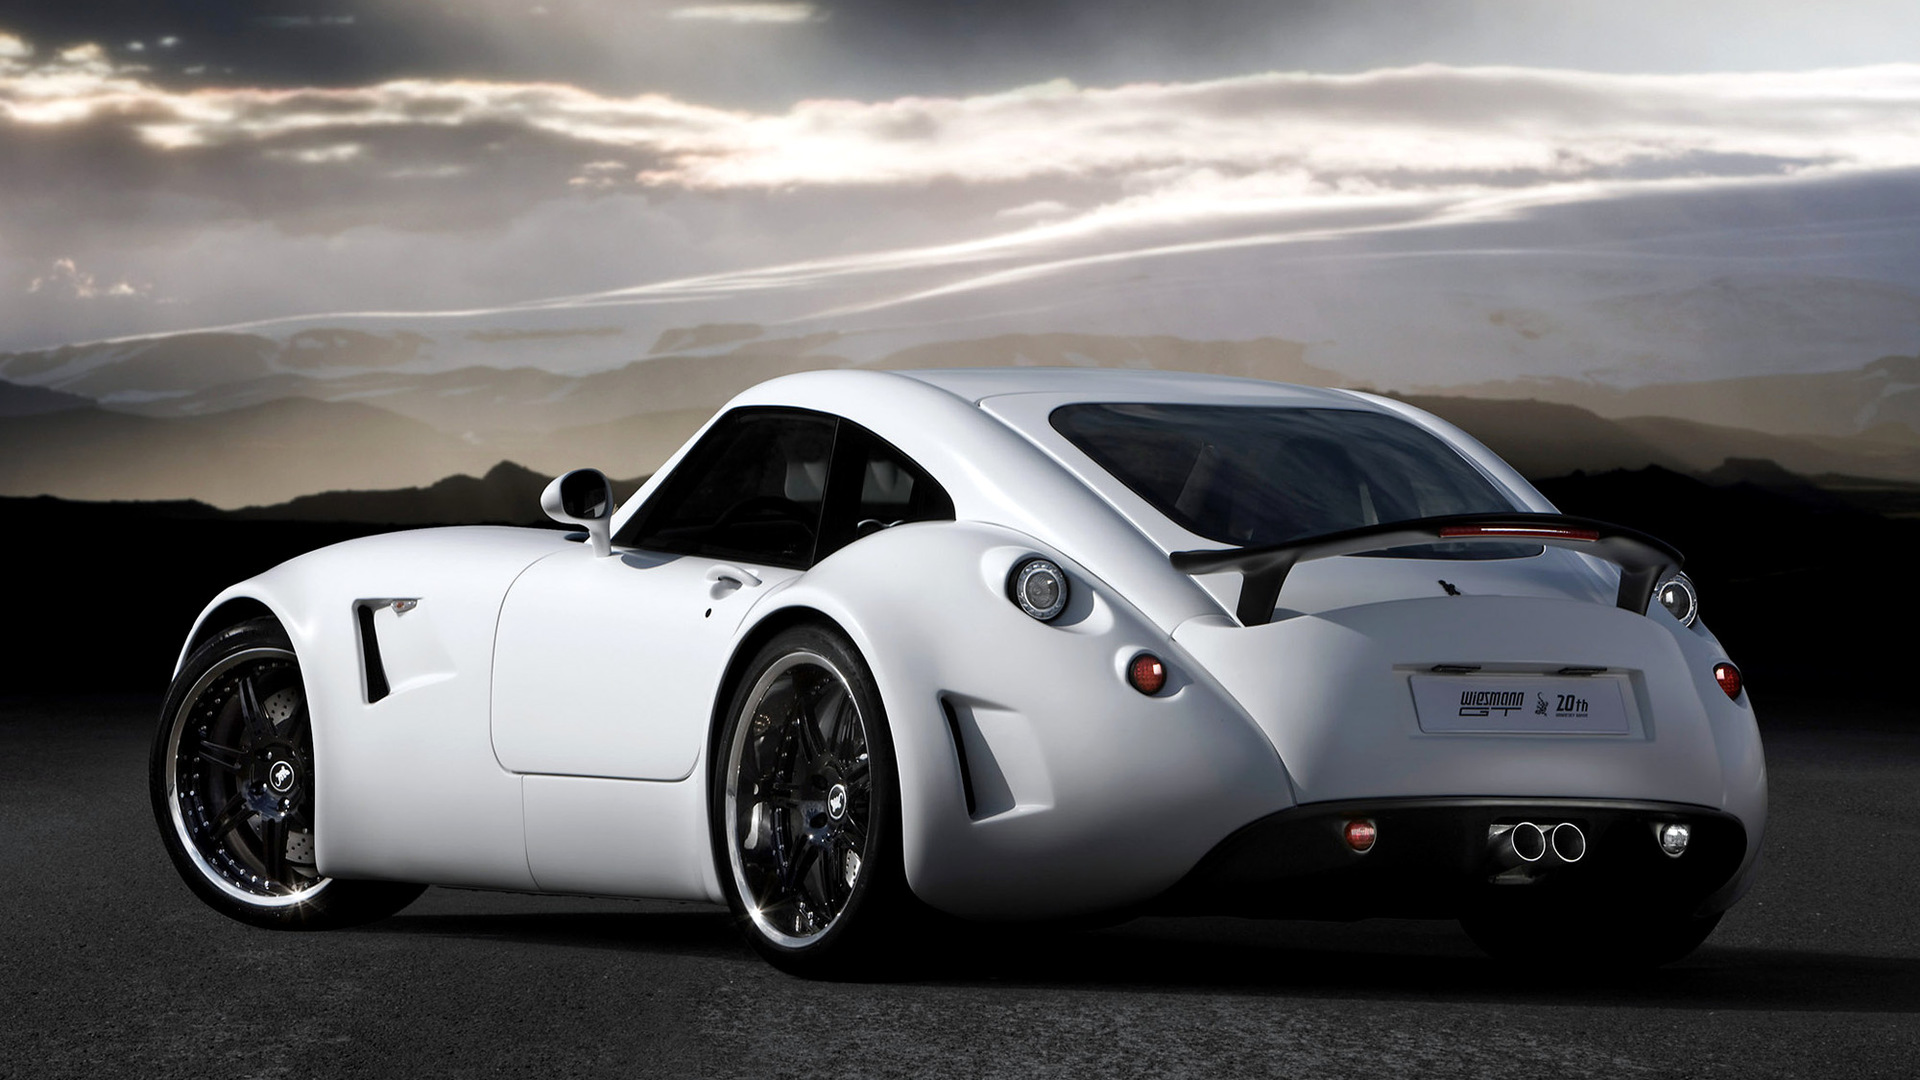 1920x1080 - Wiesmann GT MF5 Wallpapers 12